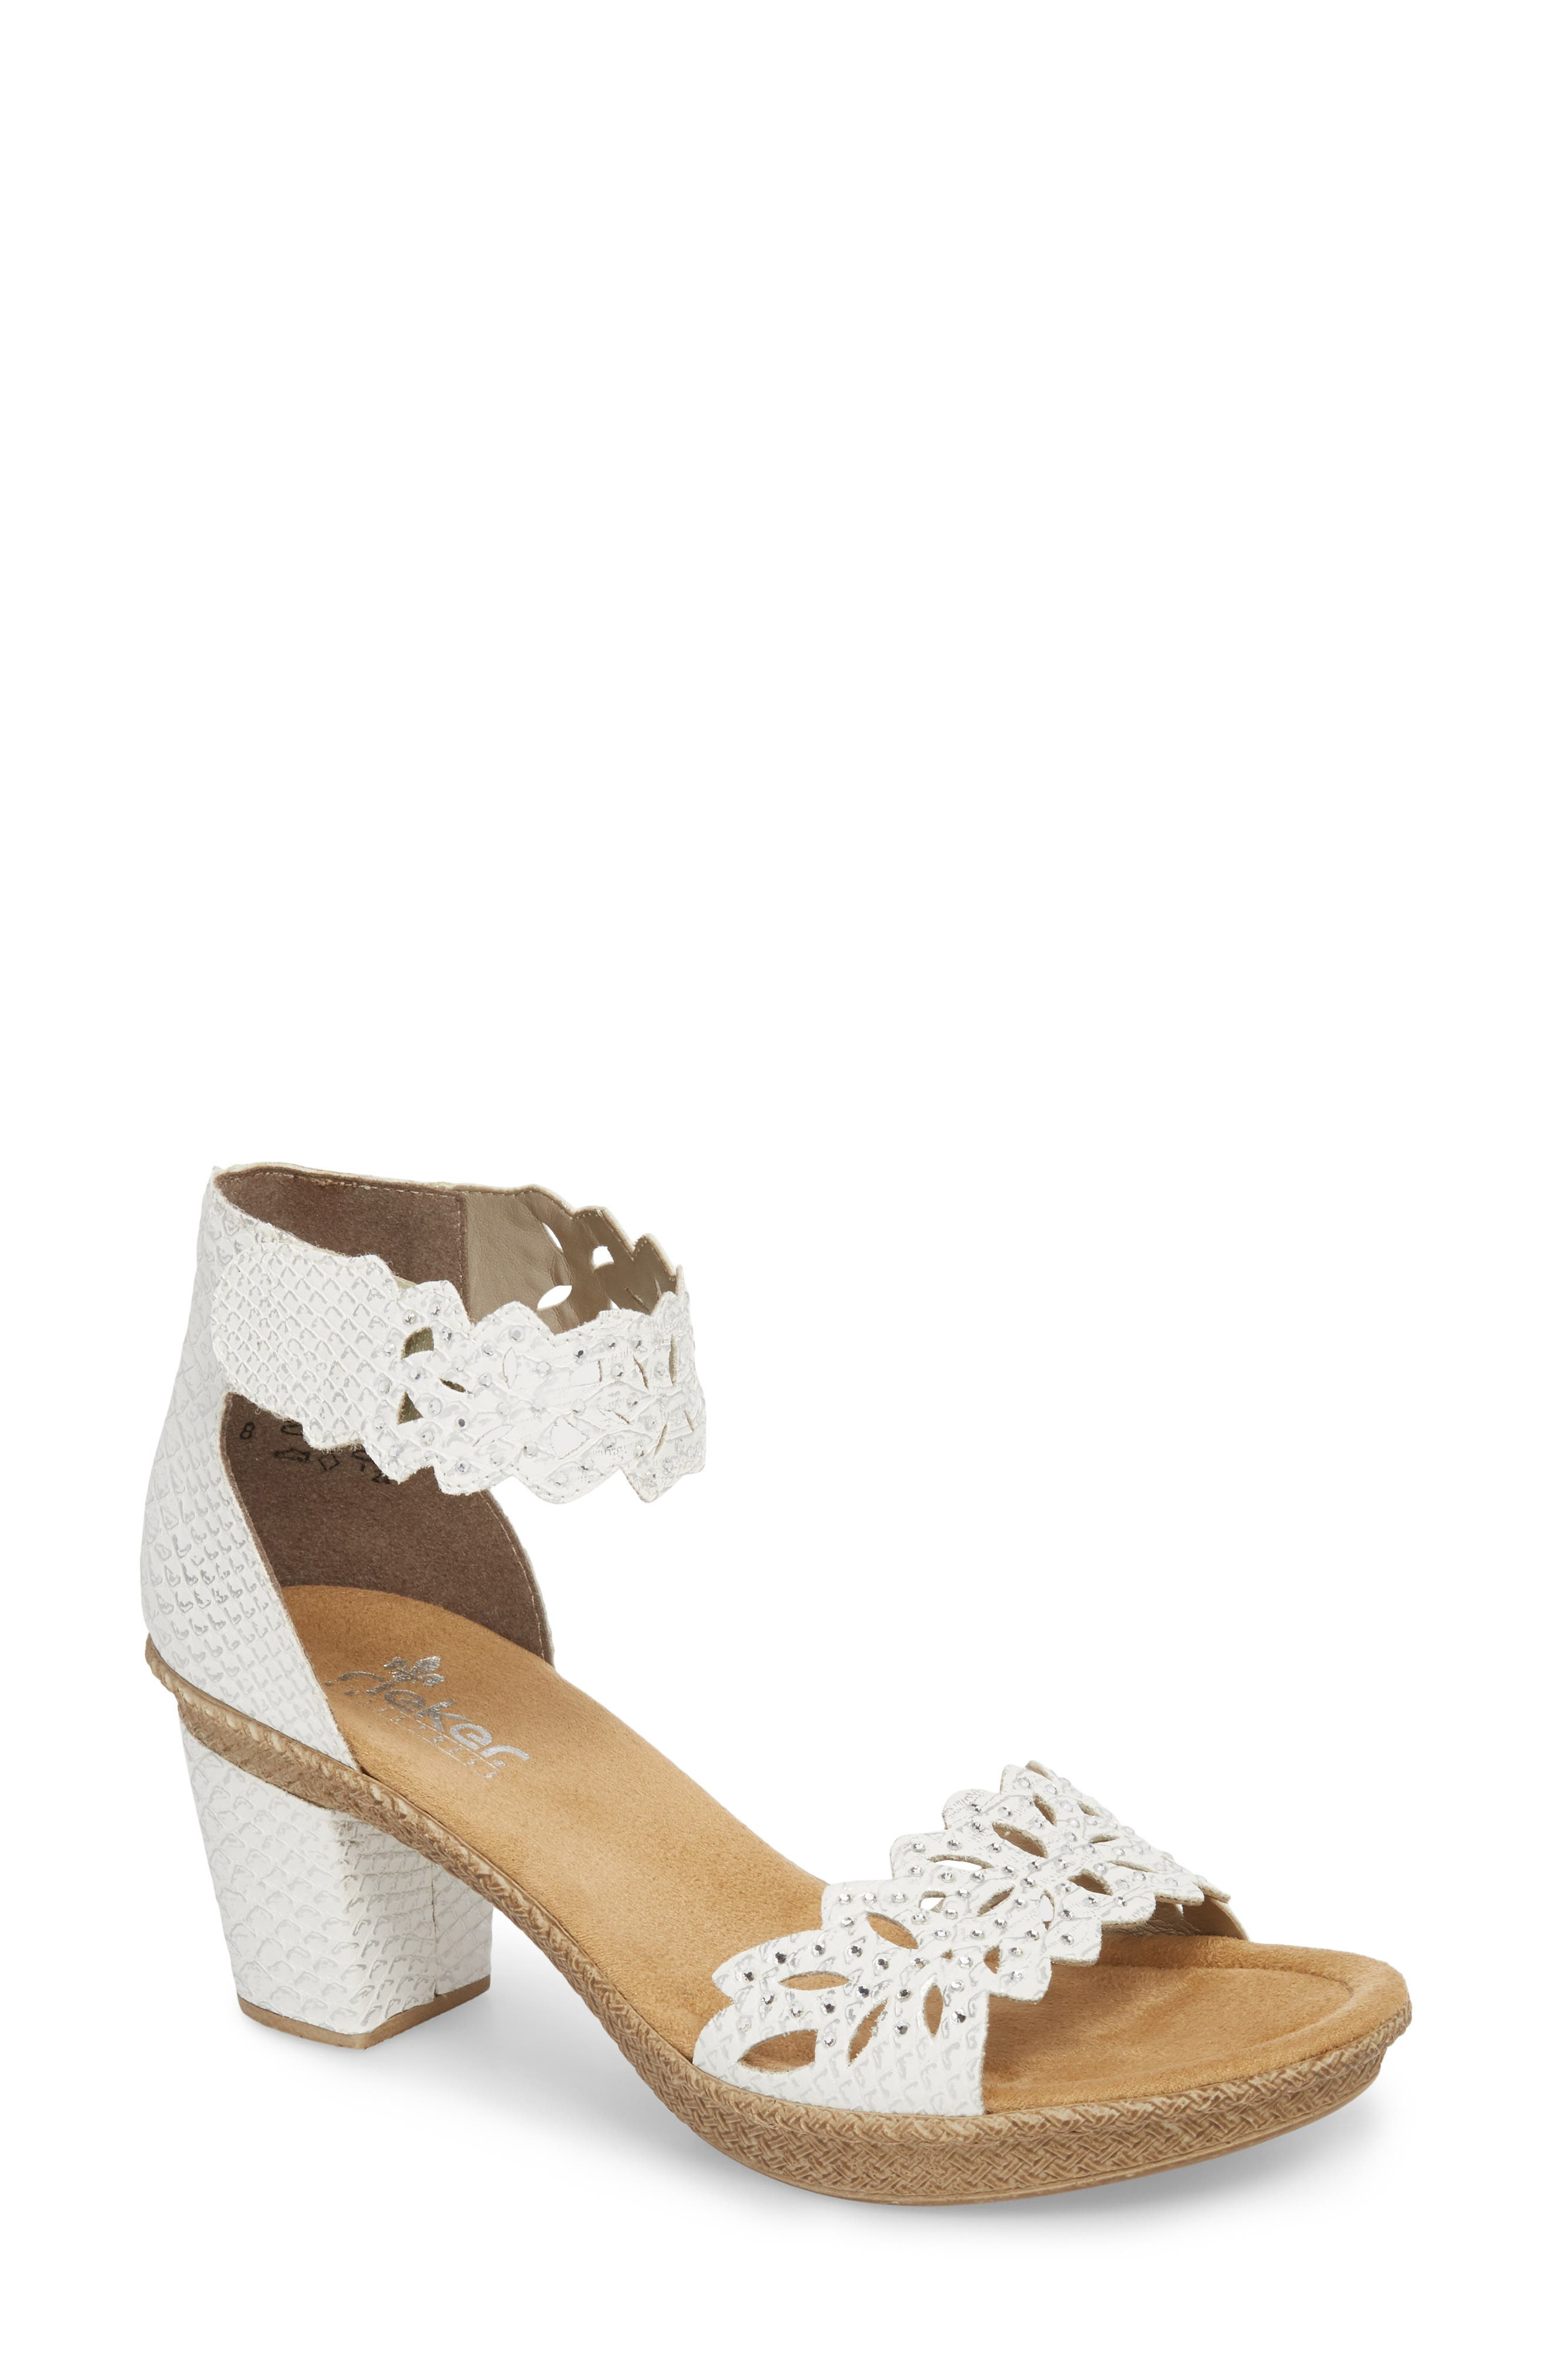 'Rabea' Sandal,                         Main,                         color, WHITE/ SILVER